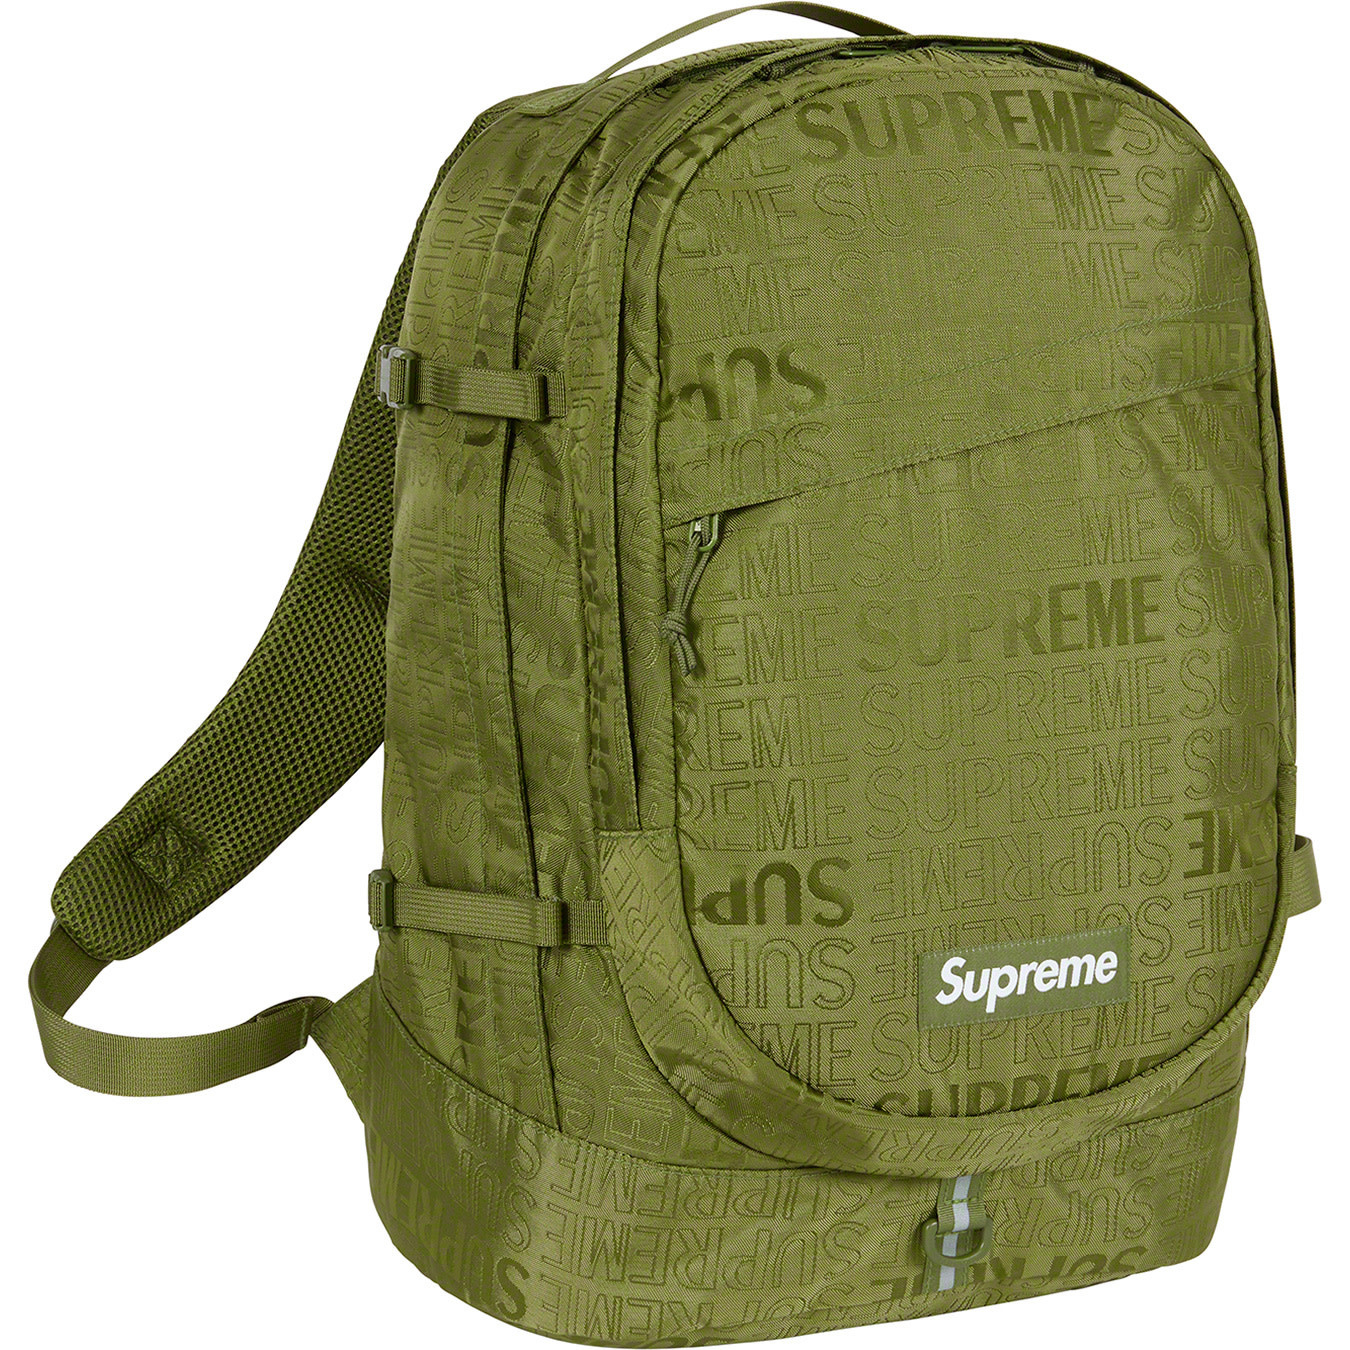 separation shoes 3663d babce Supreme supreme backpack SS19 (olive) ...